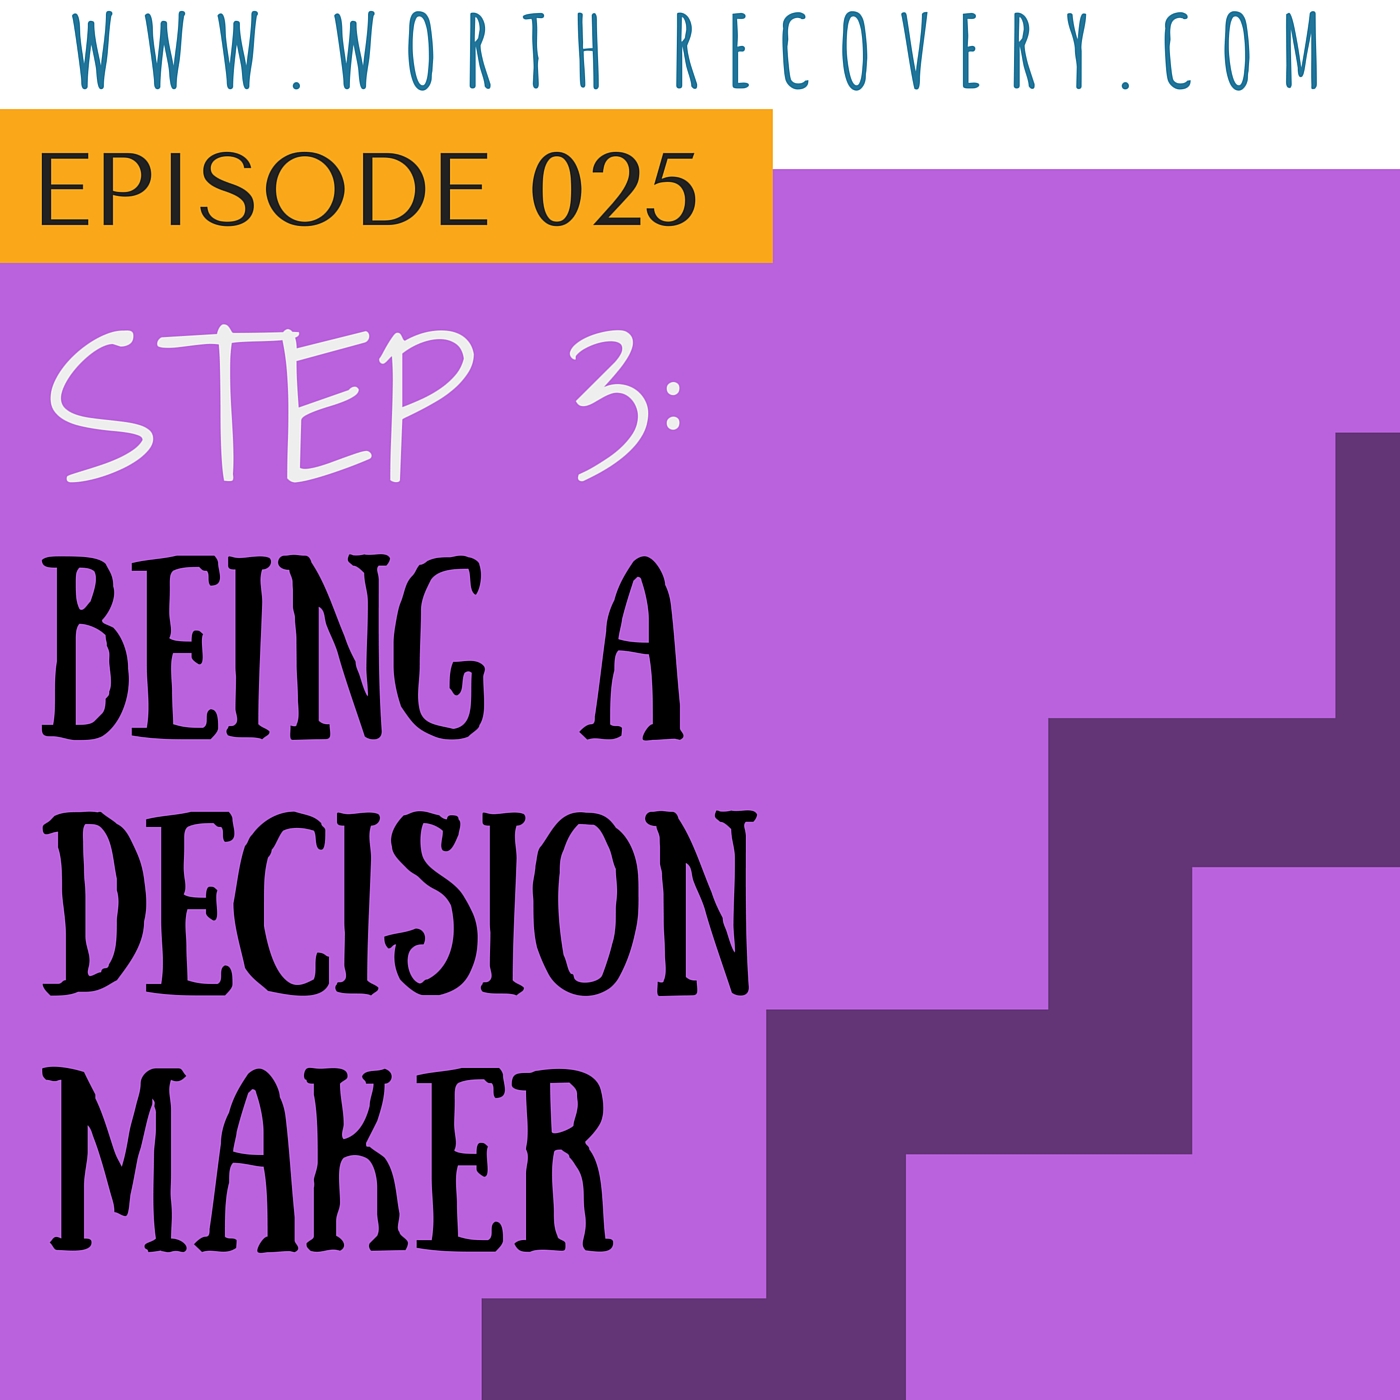 Ep 025: Step 3: Being a Decision Maker